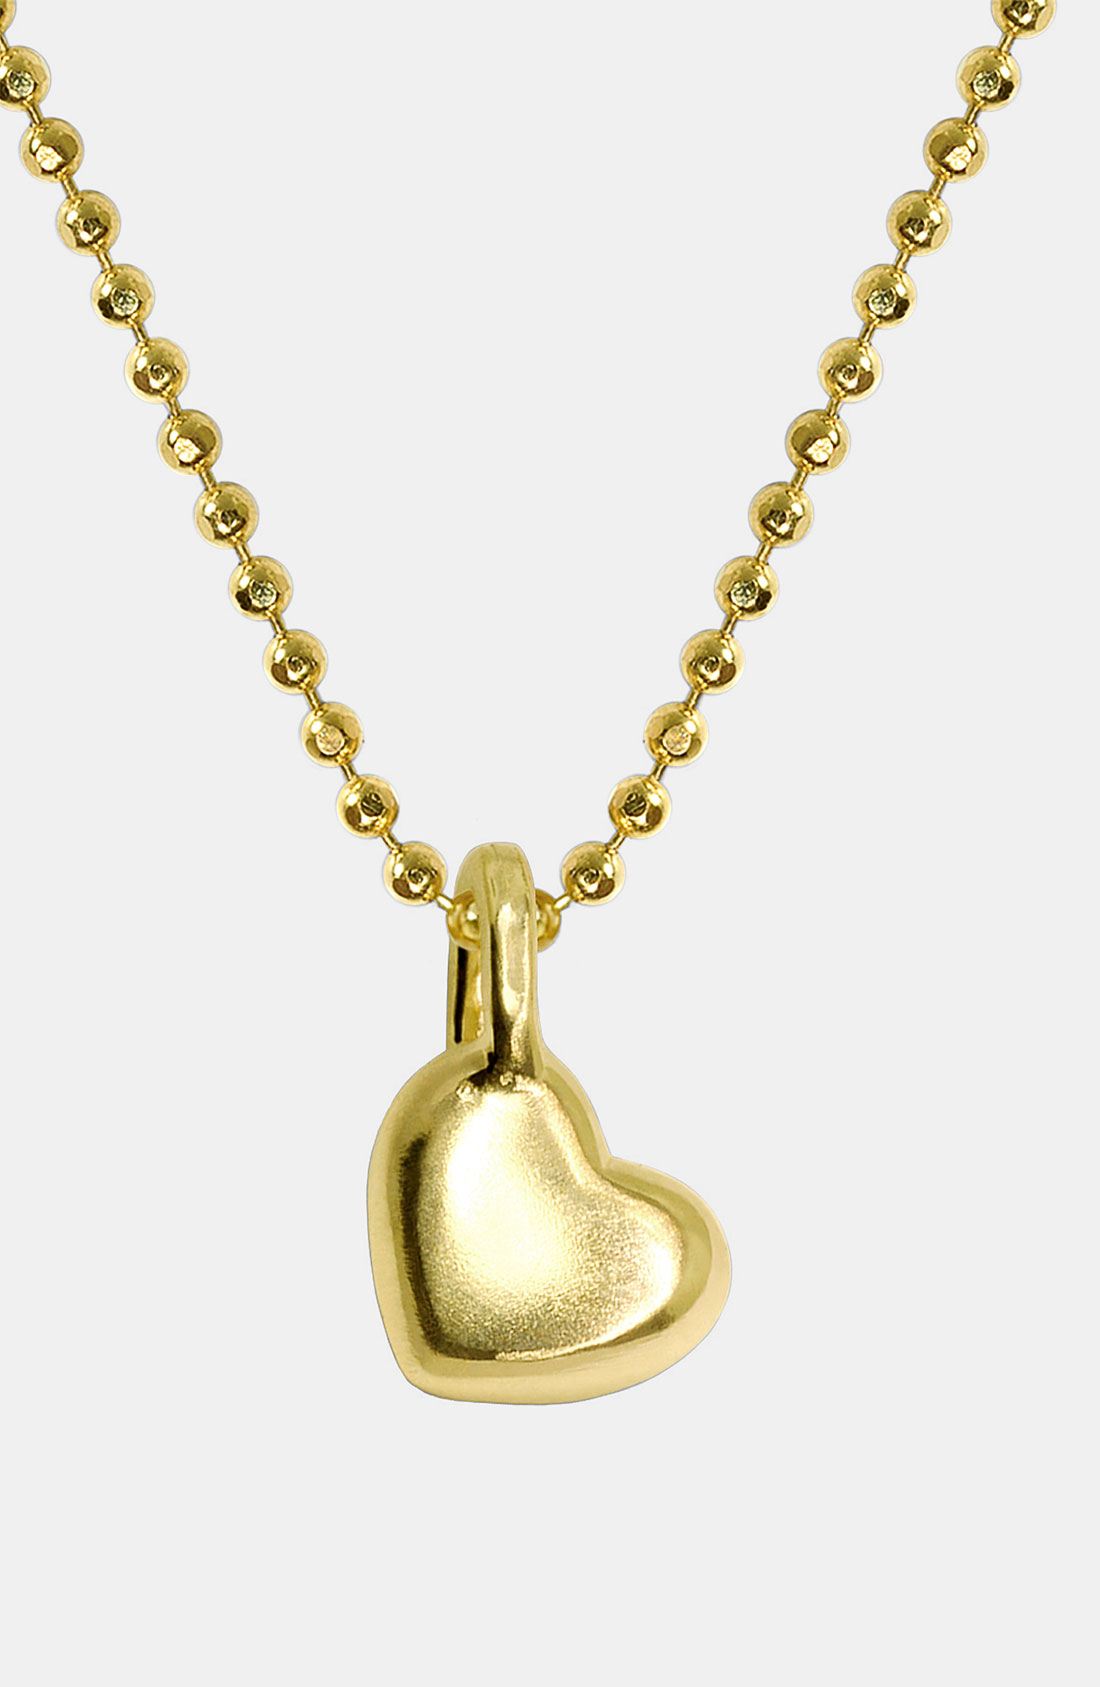 Lyst - Alex woo Mini Heart 14k Gold Pendant Necklace in Yellow